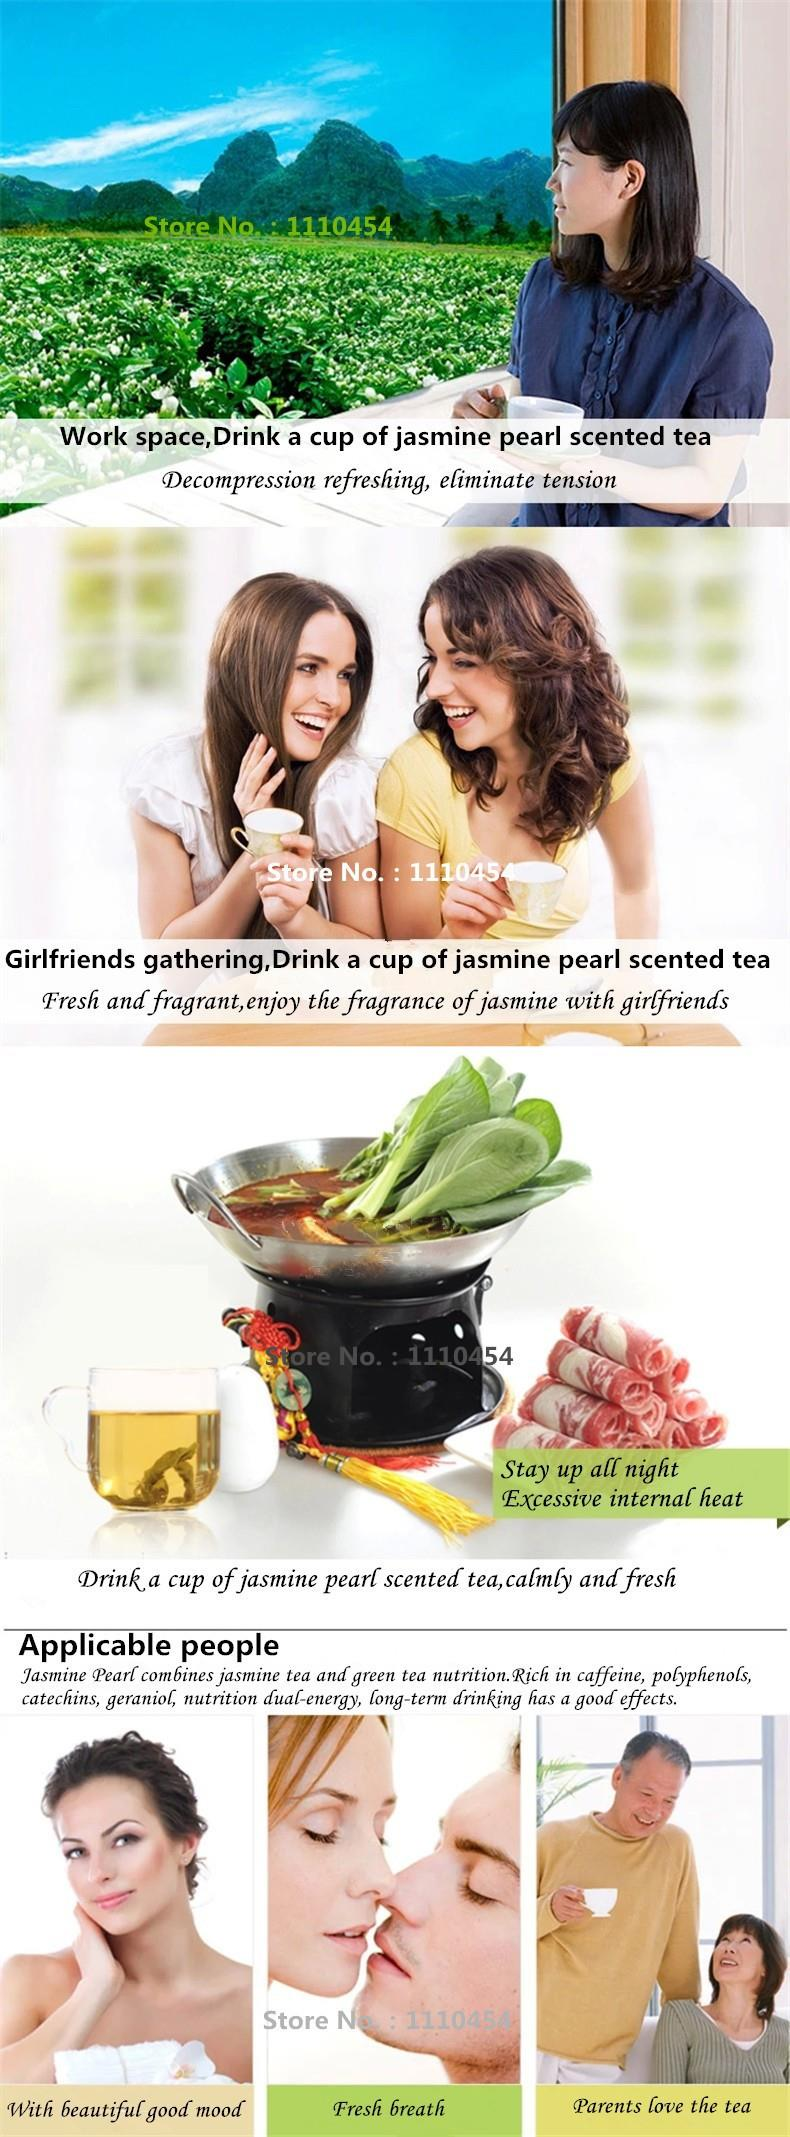 spring Organic Jasmine tea 250g Freshest Organic Food Green Tea flower teas Health Care Weight Loss Free Shipping